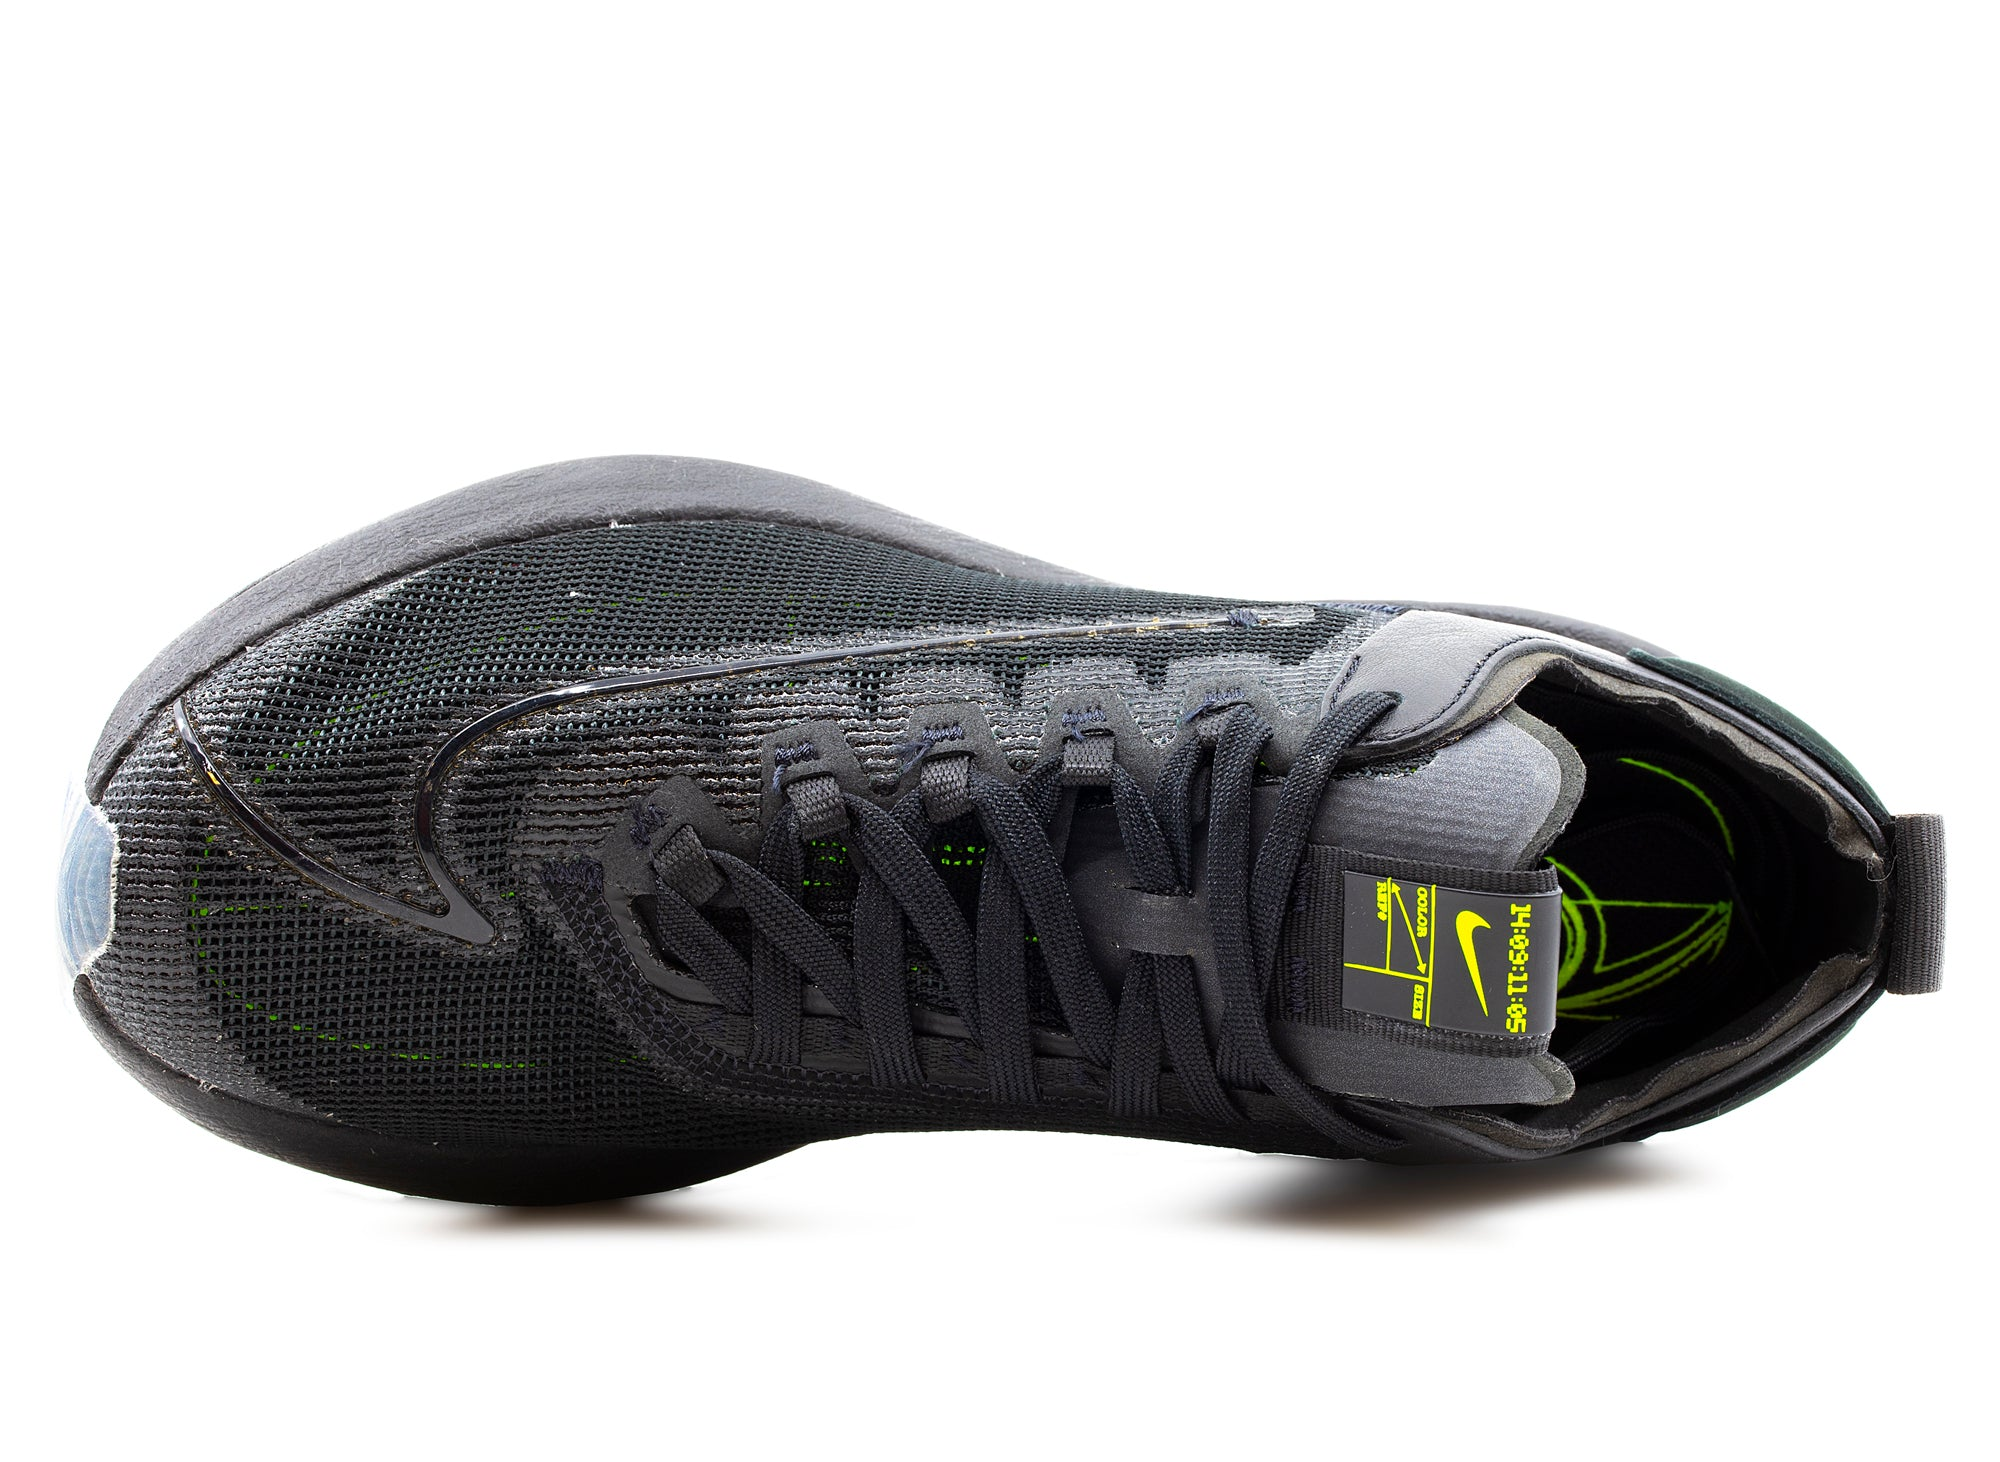 Endulzar Hacer la cena Serrado  Women's Nike Zoom Double Stacked - Oneness Boutique